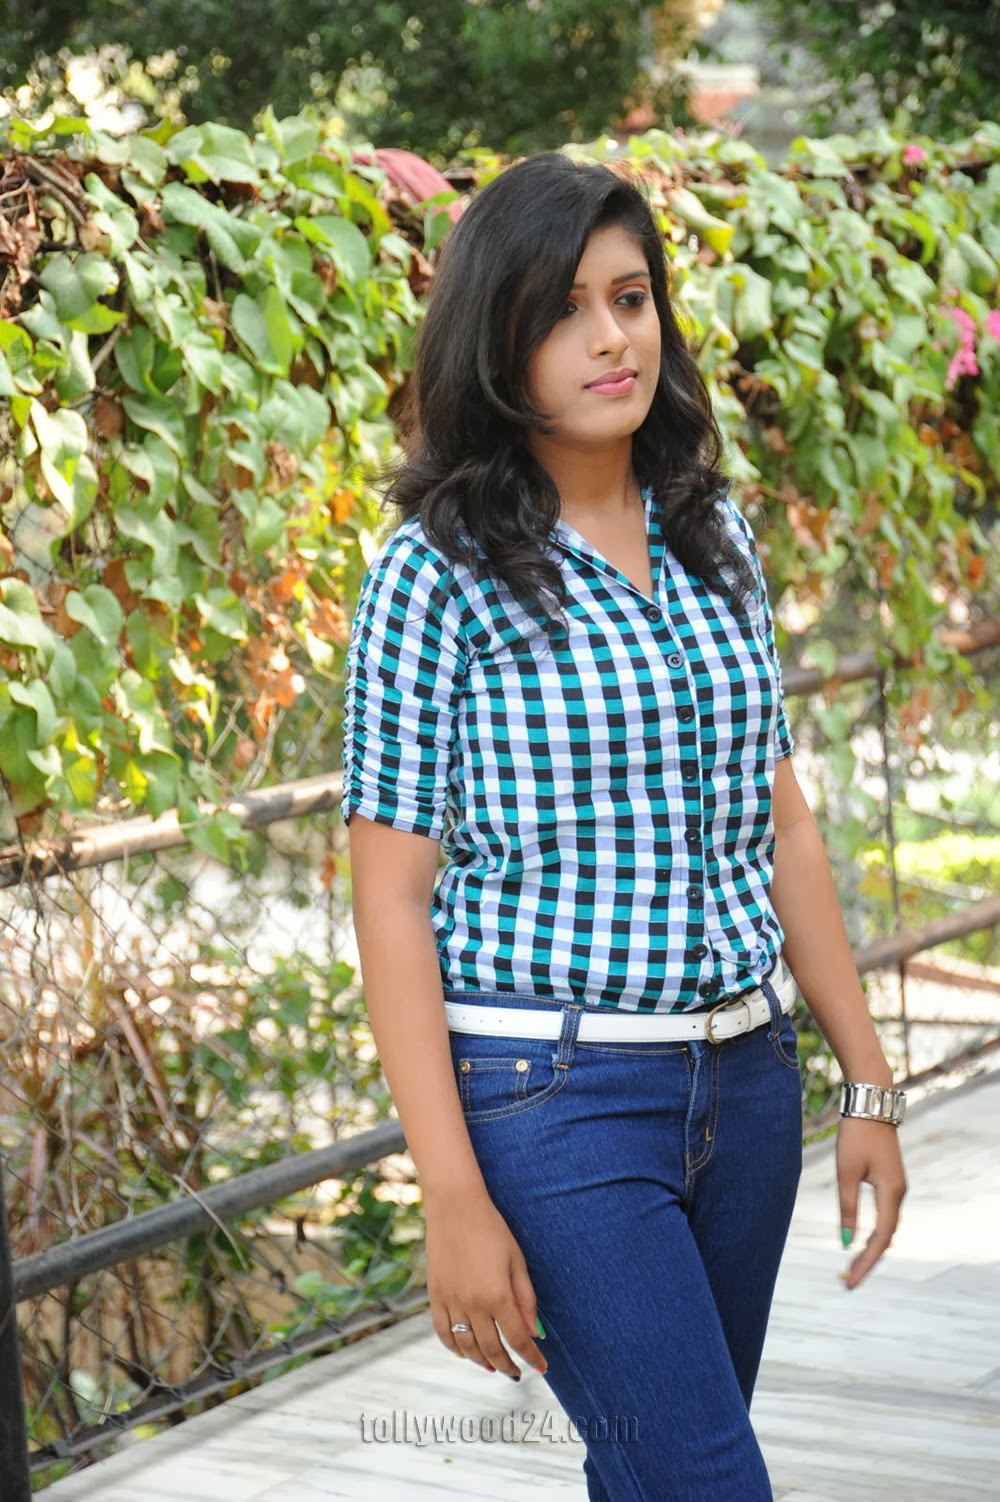 Liza reddy glam pix in jeans-HQ-Photo-2